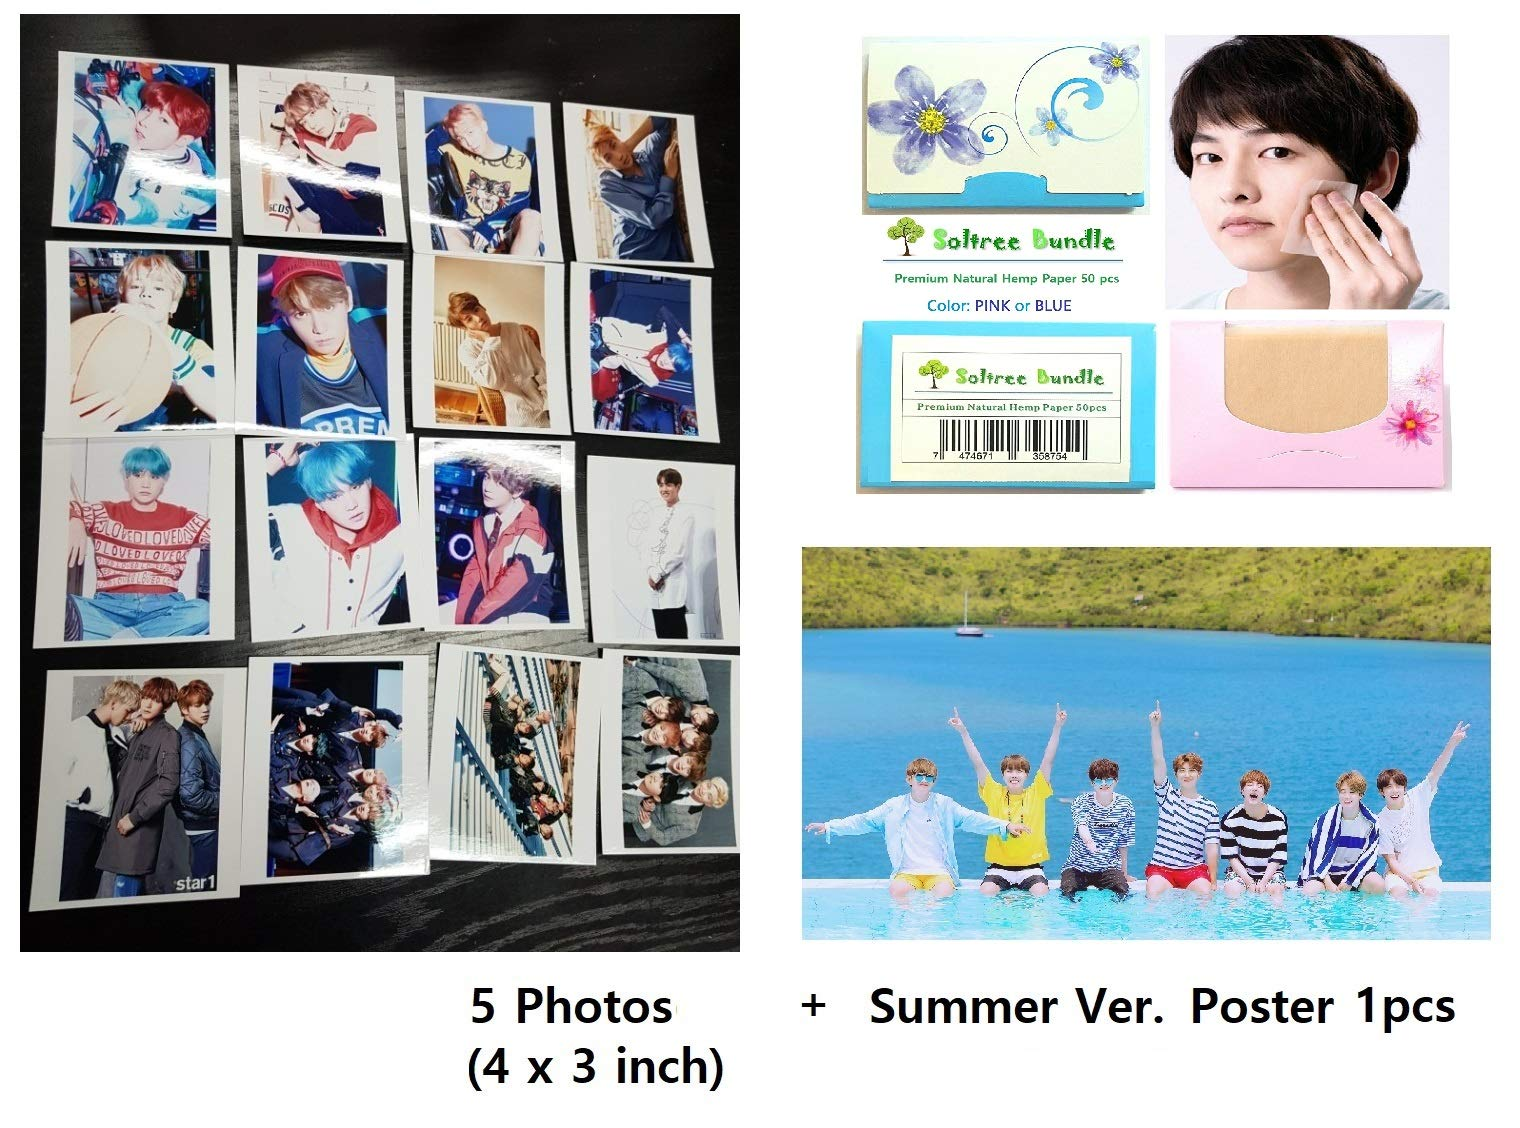 BTS Bangtan Boys - 12 PHOTO POSTERS(16.5 x 11.7 inches) + 1 STICKER + 5 Photos(4 x 3 inches)